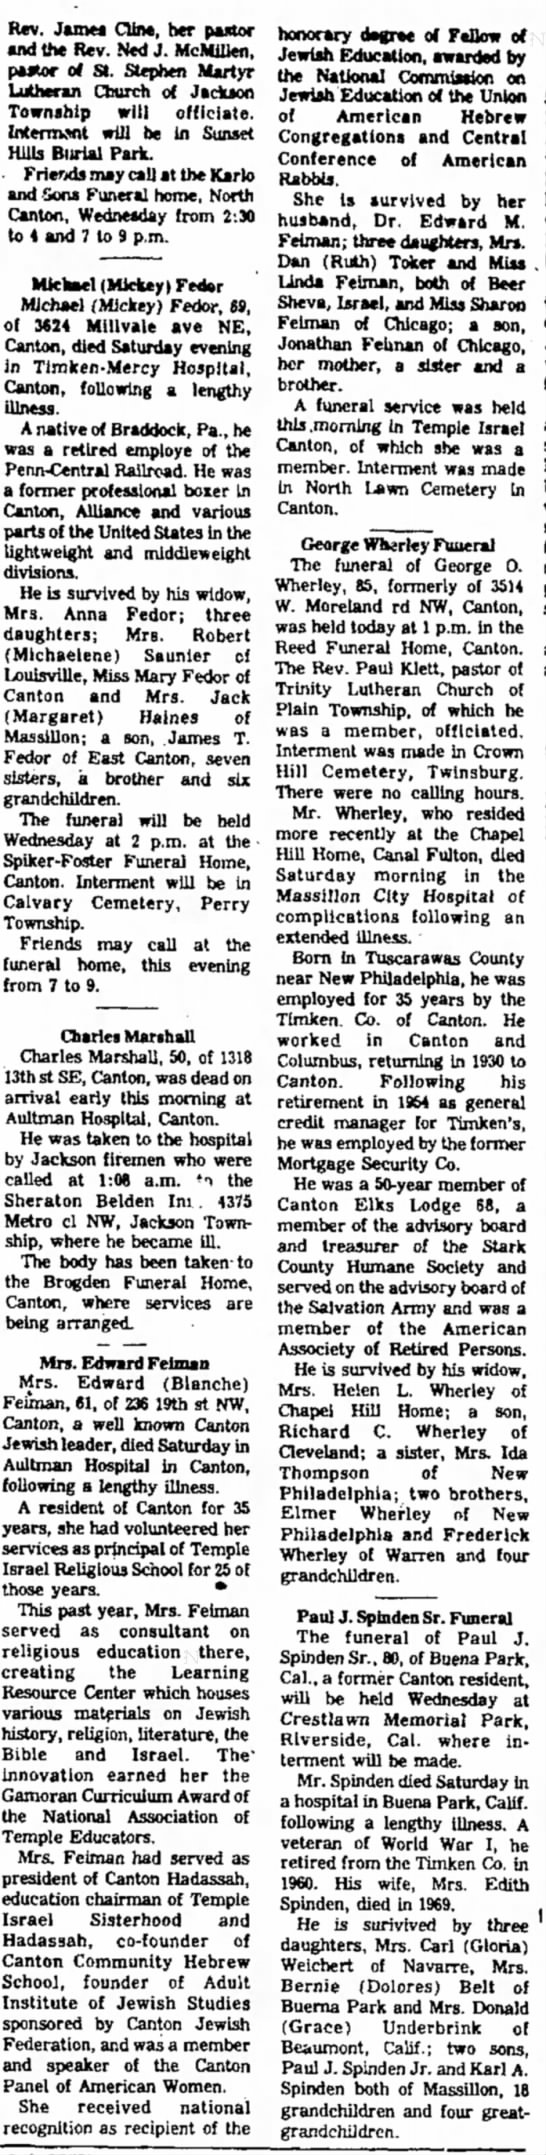 The Evening Independent - Massillon, 2 Sept 1075 p. 3, col 3-4 - Rev. James Cline, her pastor and the Rev. Ned...